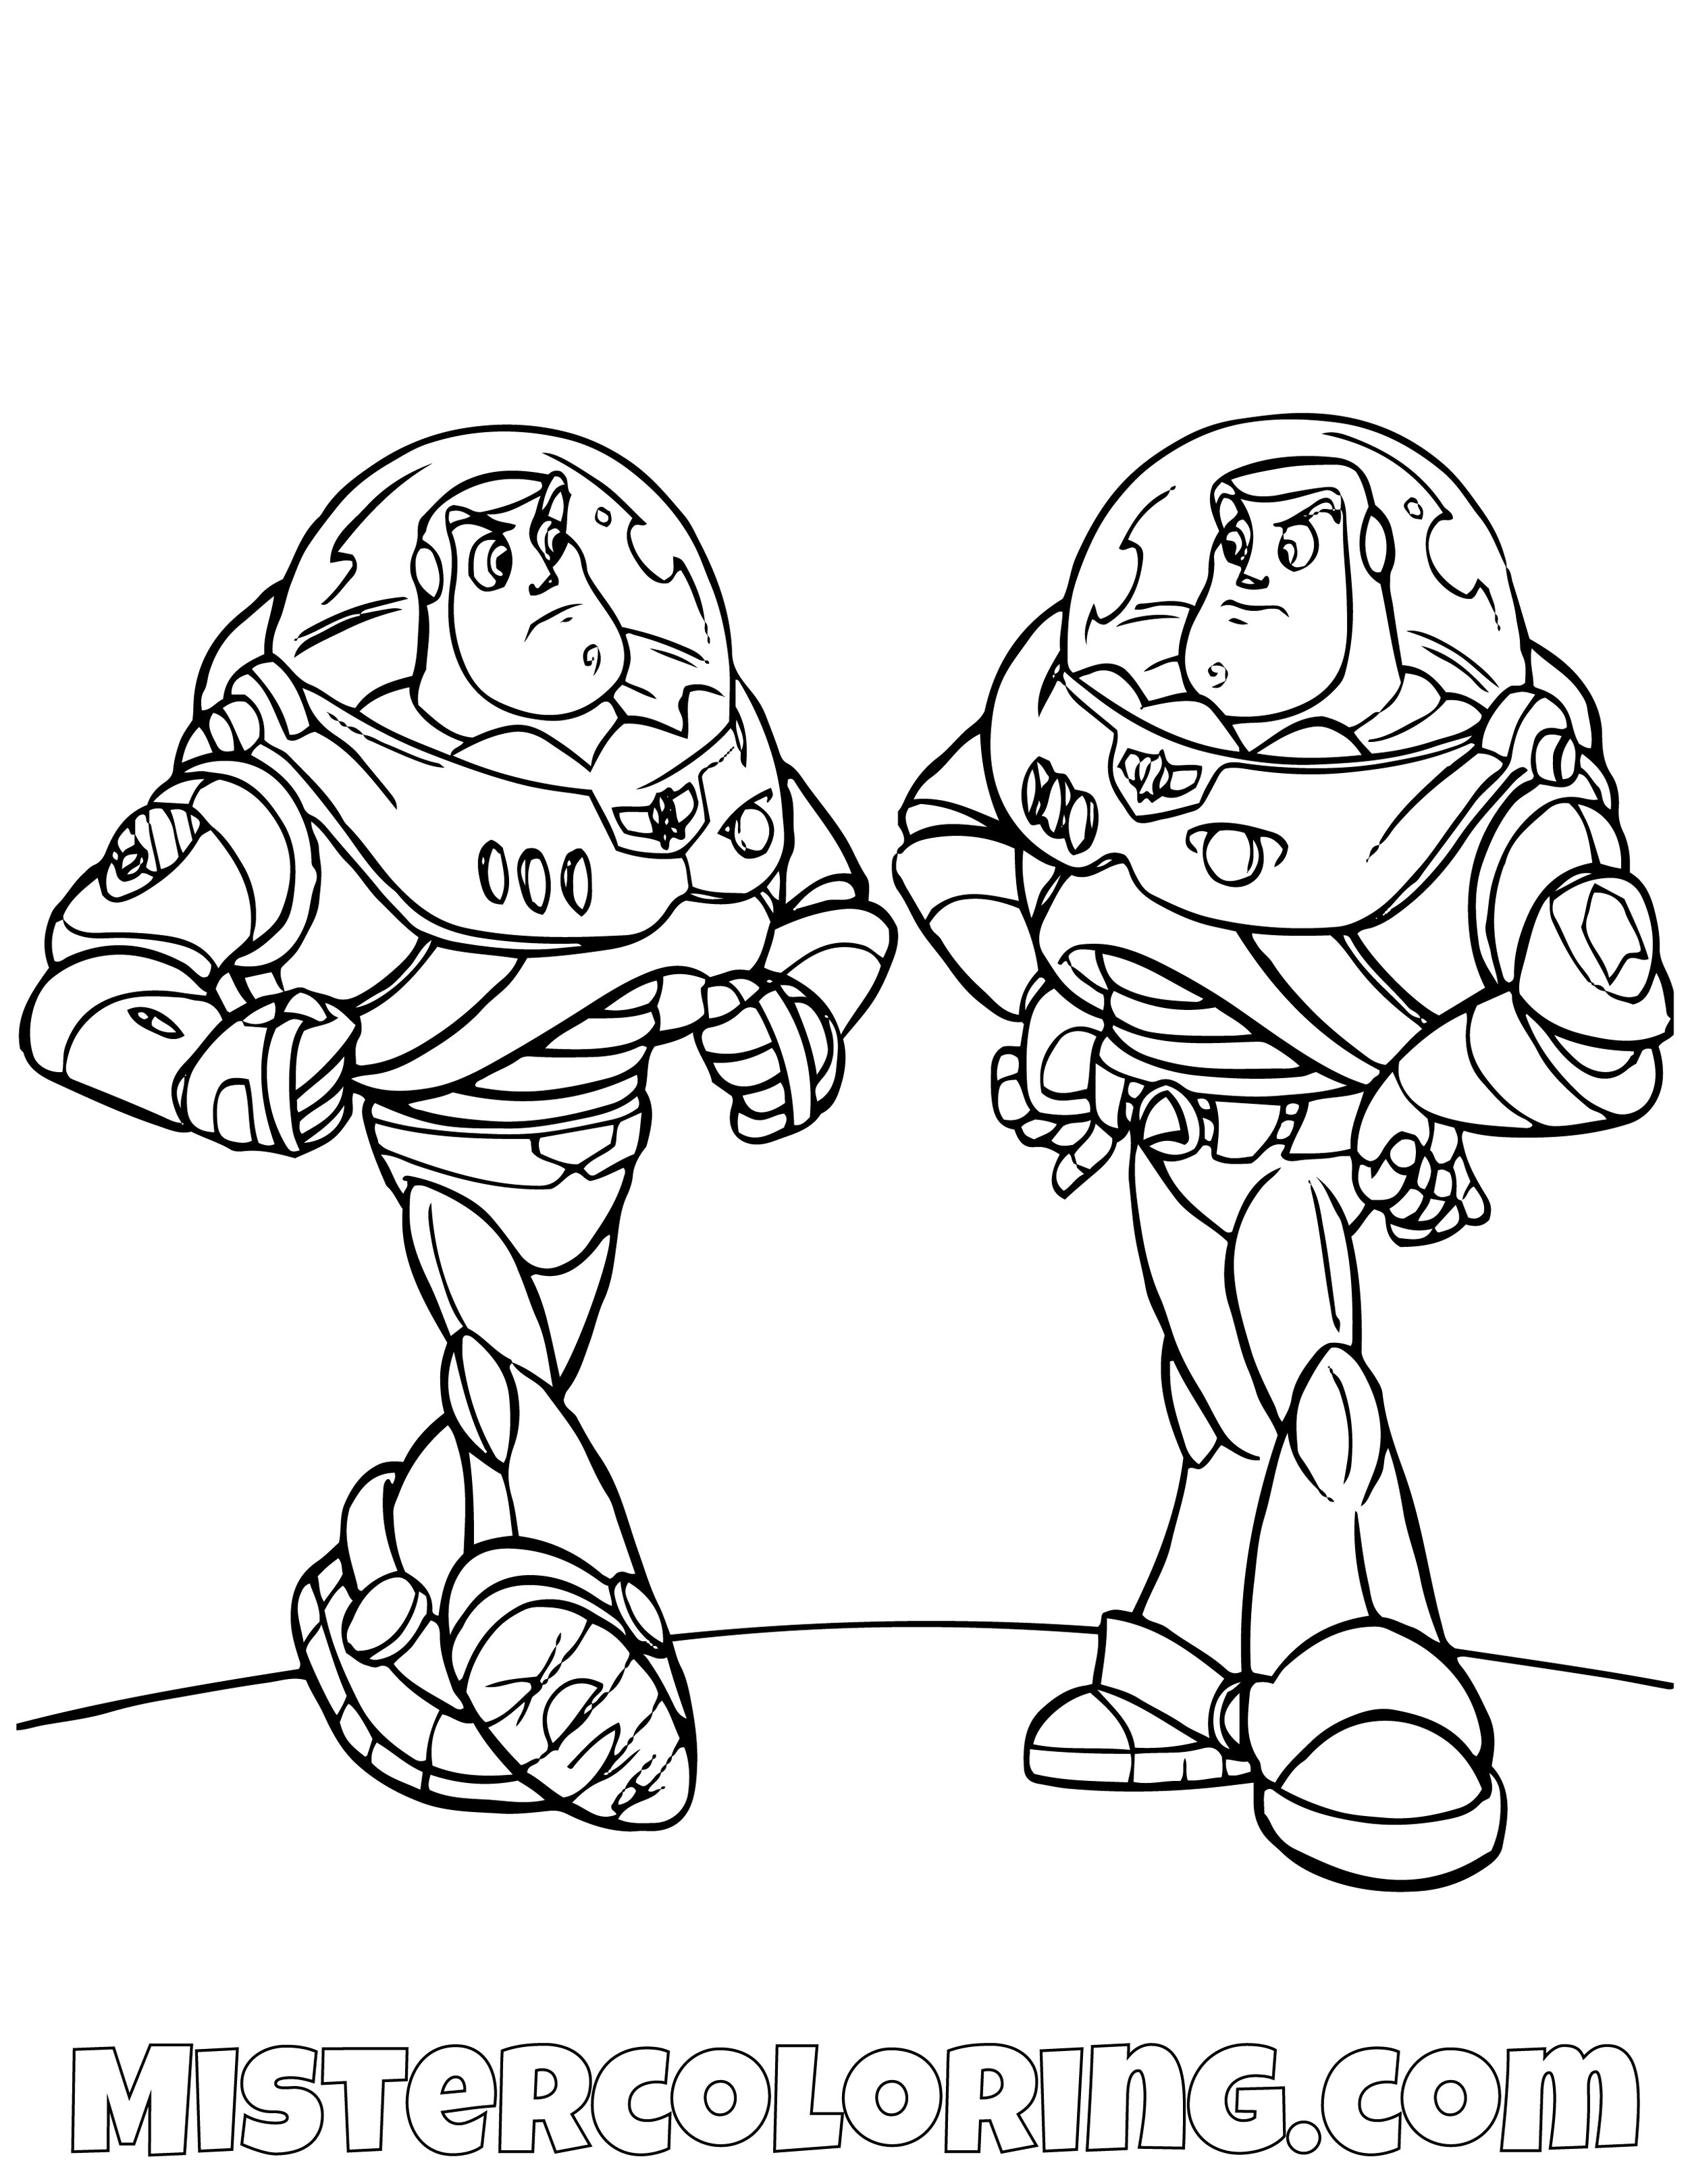 Buzz Lightyear Vs Buzz Lightyear Toy Story Coloring Page